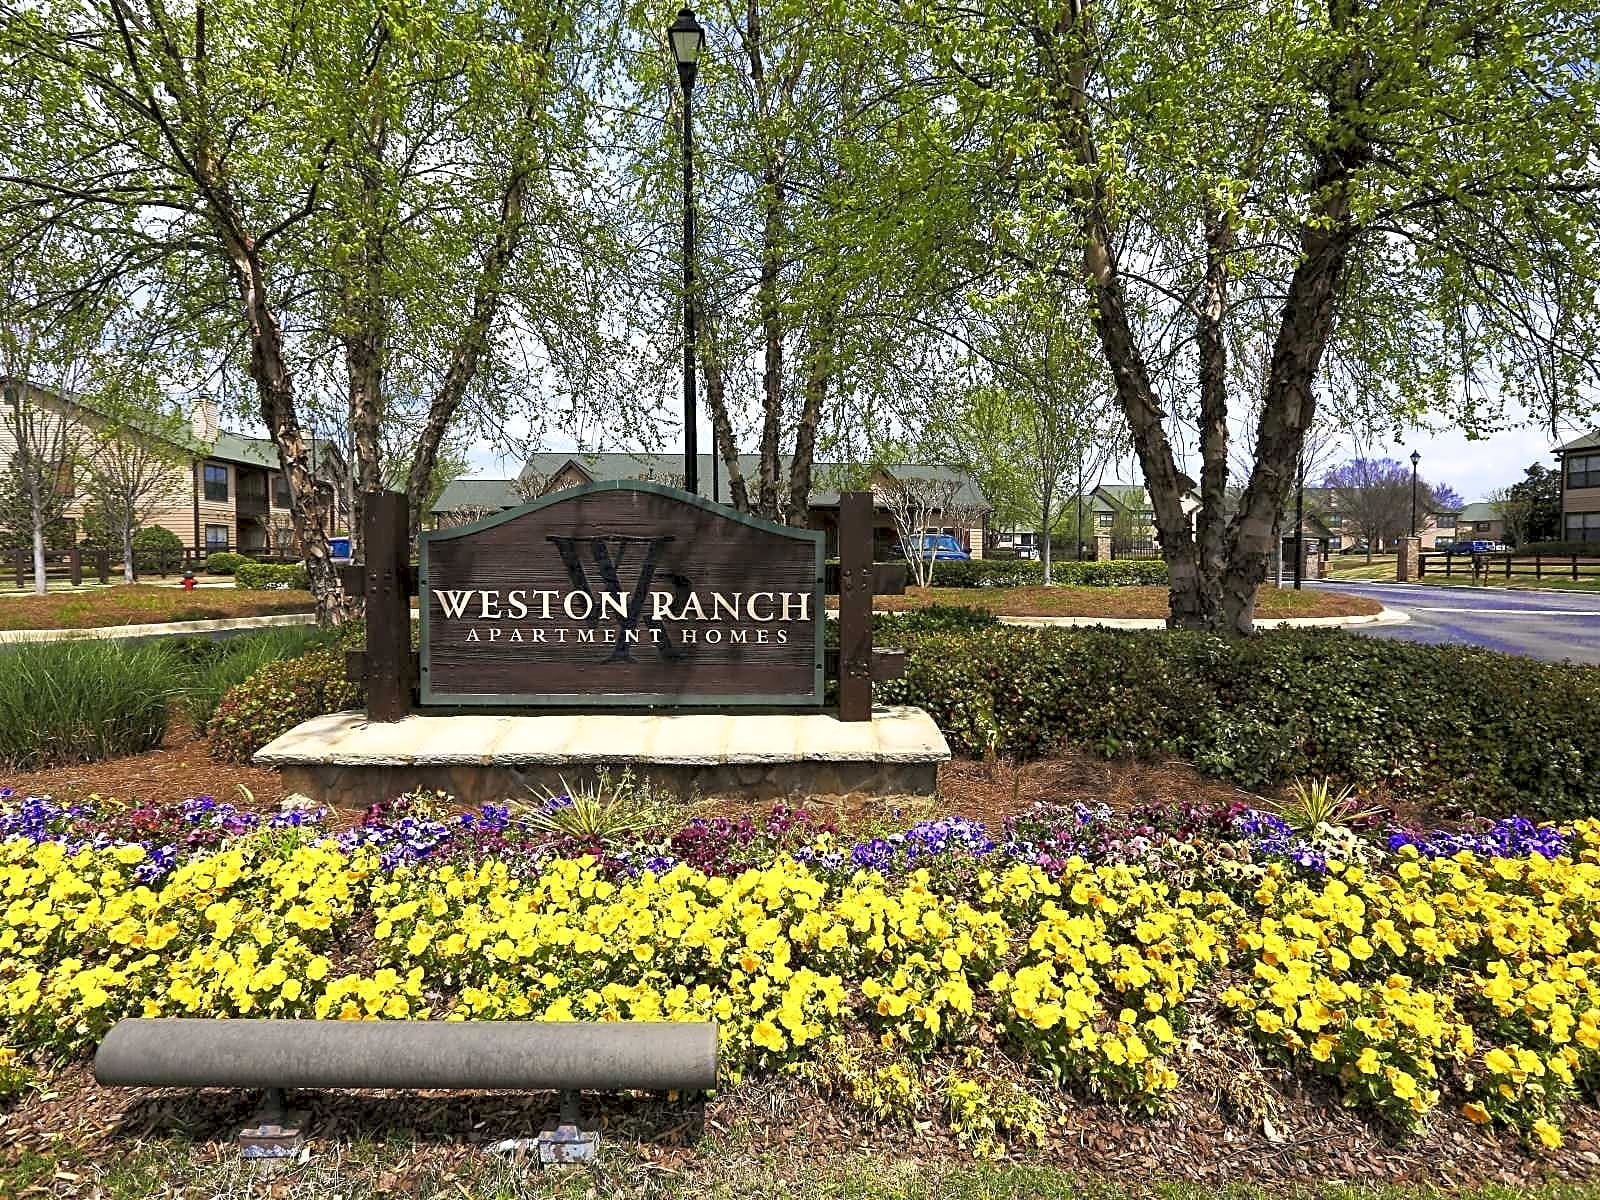 Weston Ranch for rent in Madison